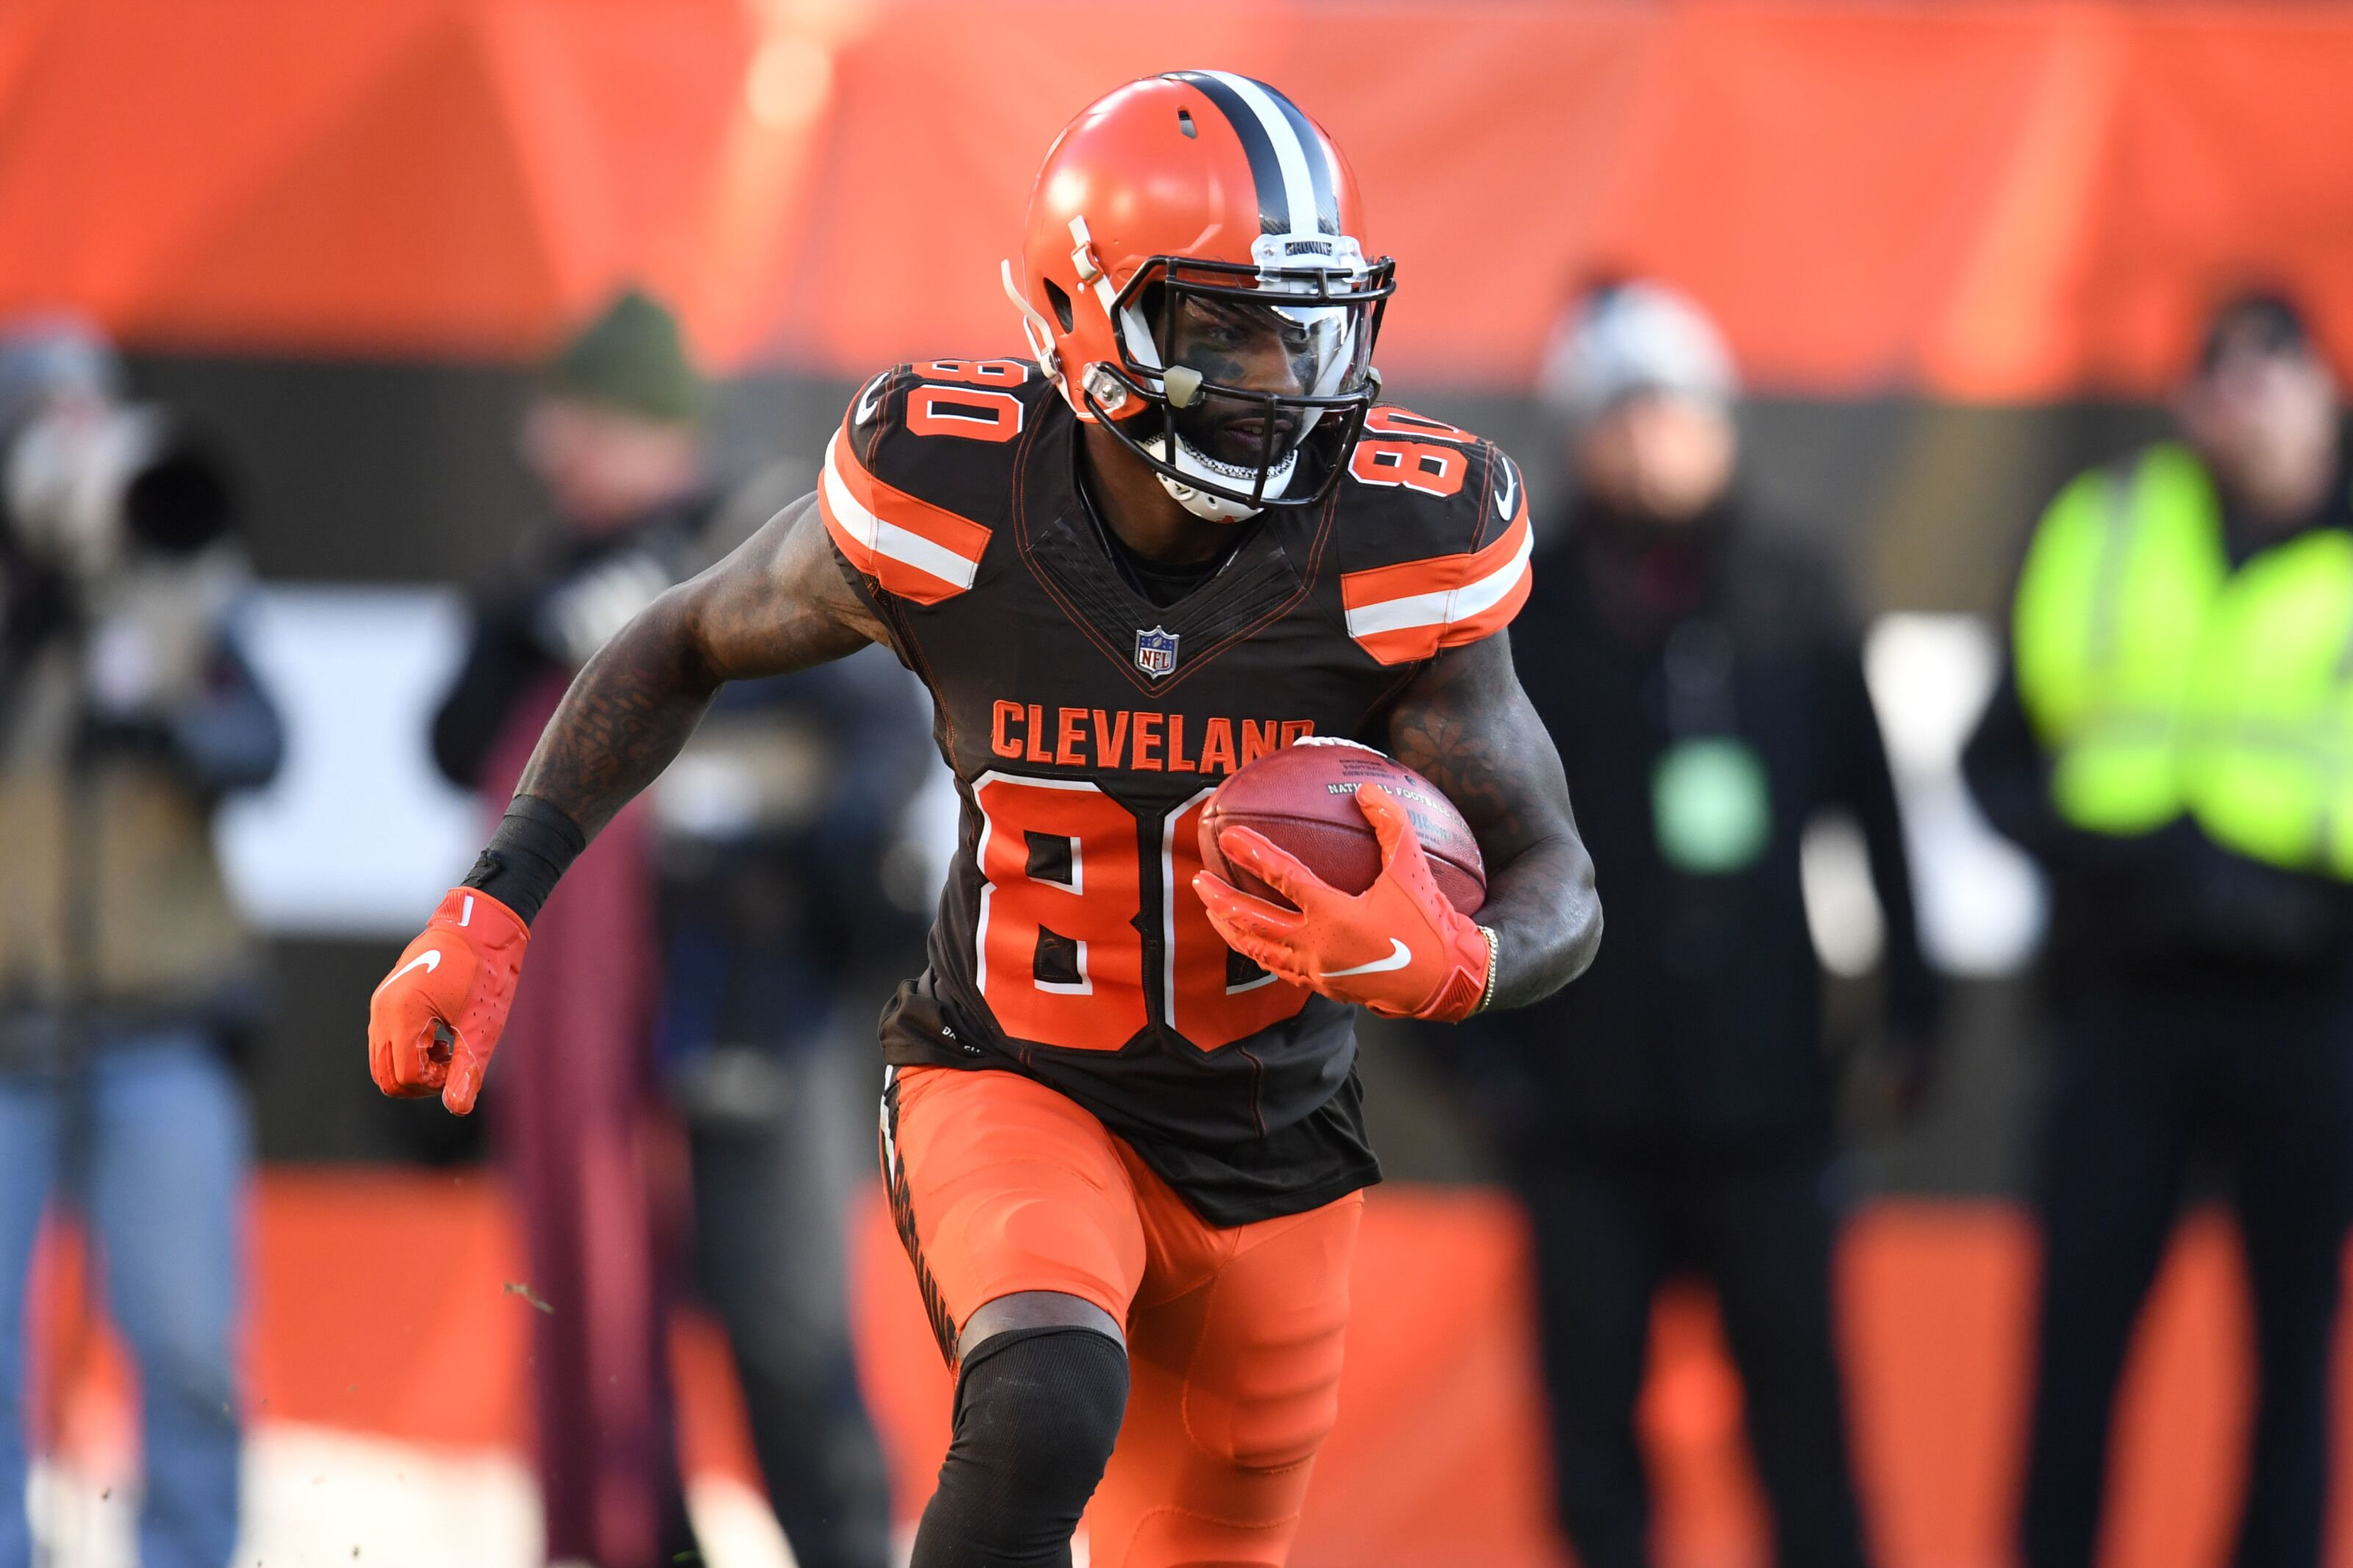 new arrival 863e7 b9df8 Cleveland Browns will do 'everything they can' to keep OBJ ...